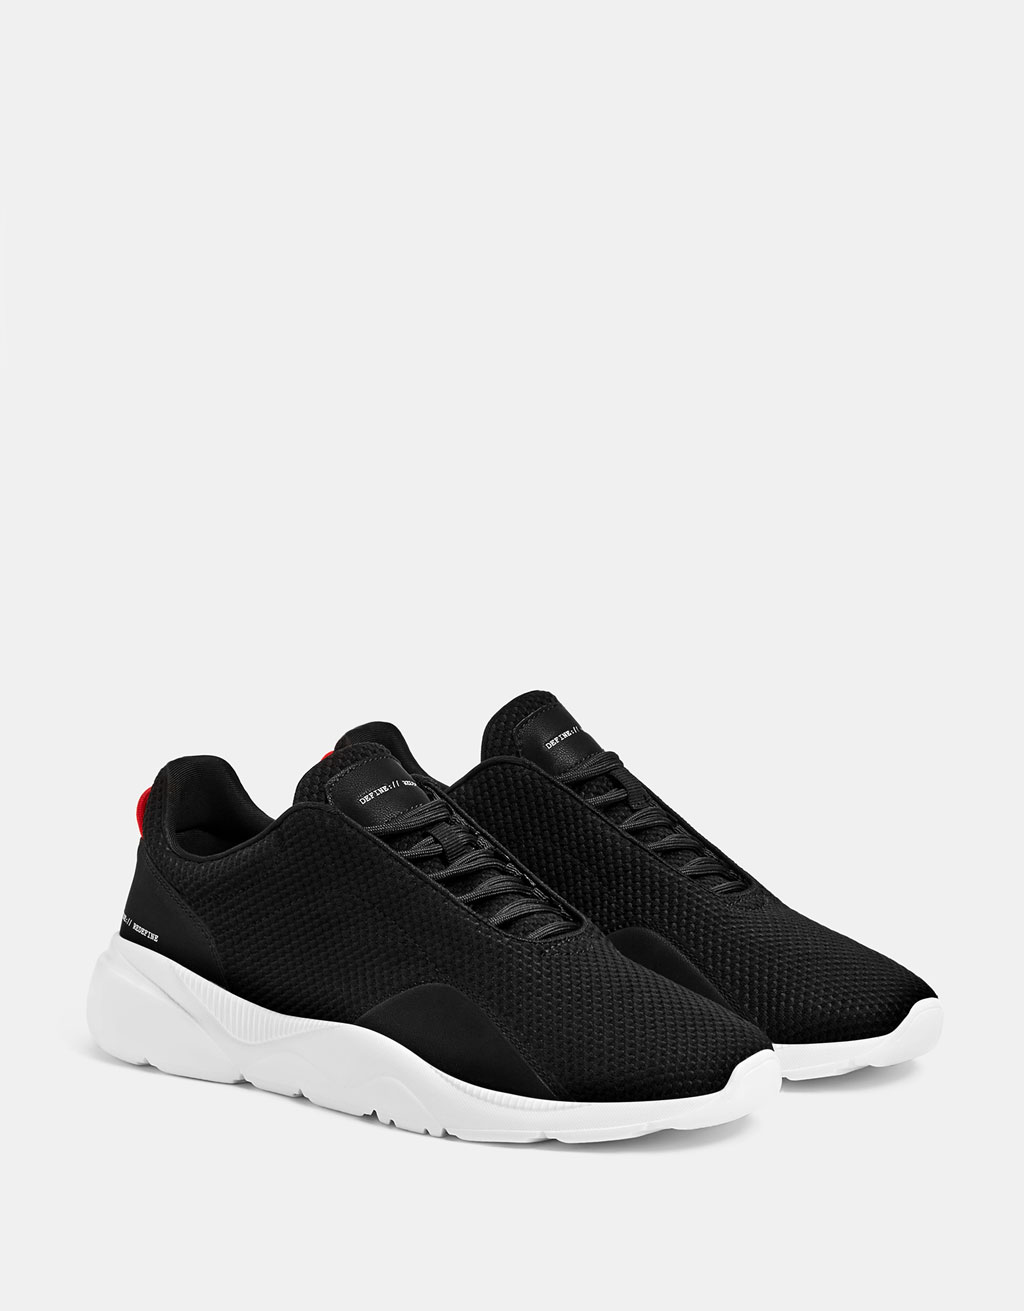 Men's mesh running shoe